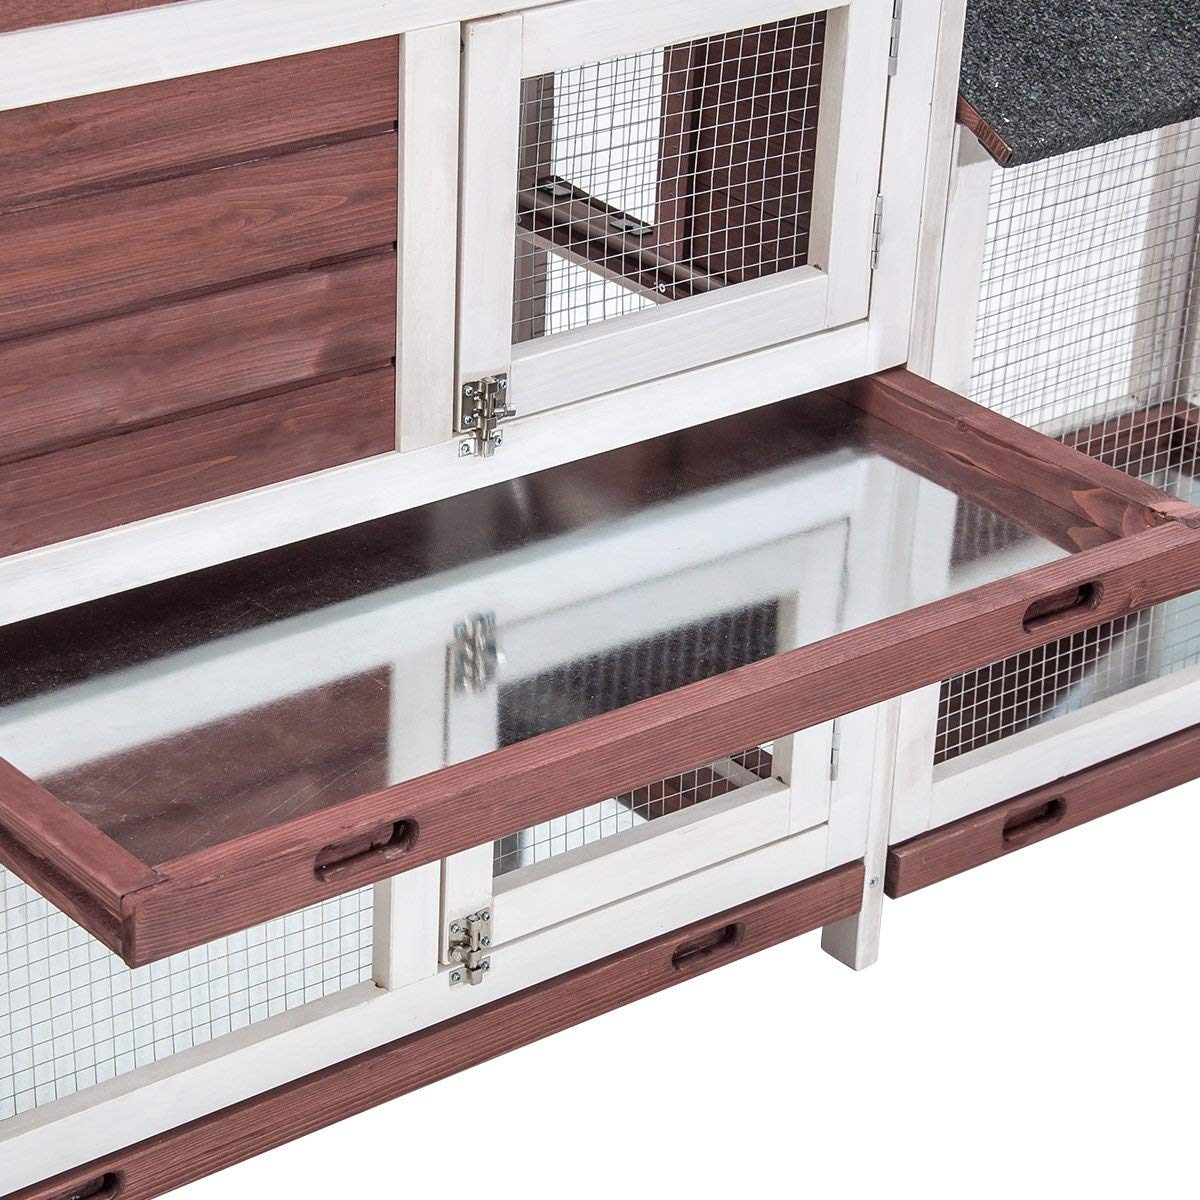 Purlove Pet Rabbit Hutch Wooden House Chicken Coop for Small Animals (Rabbit Hutch #4) by Purlove (Image #5)